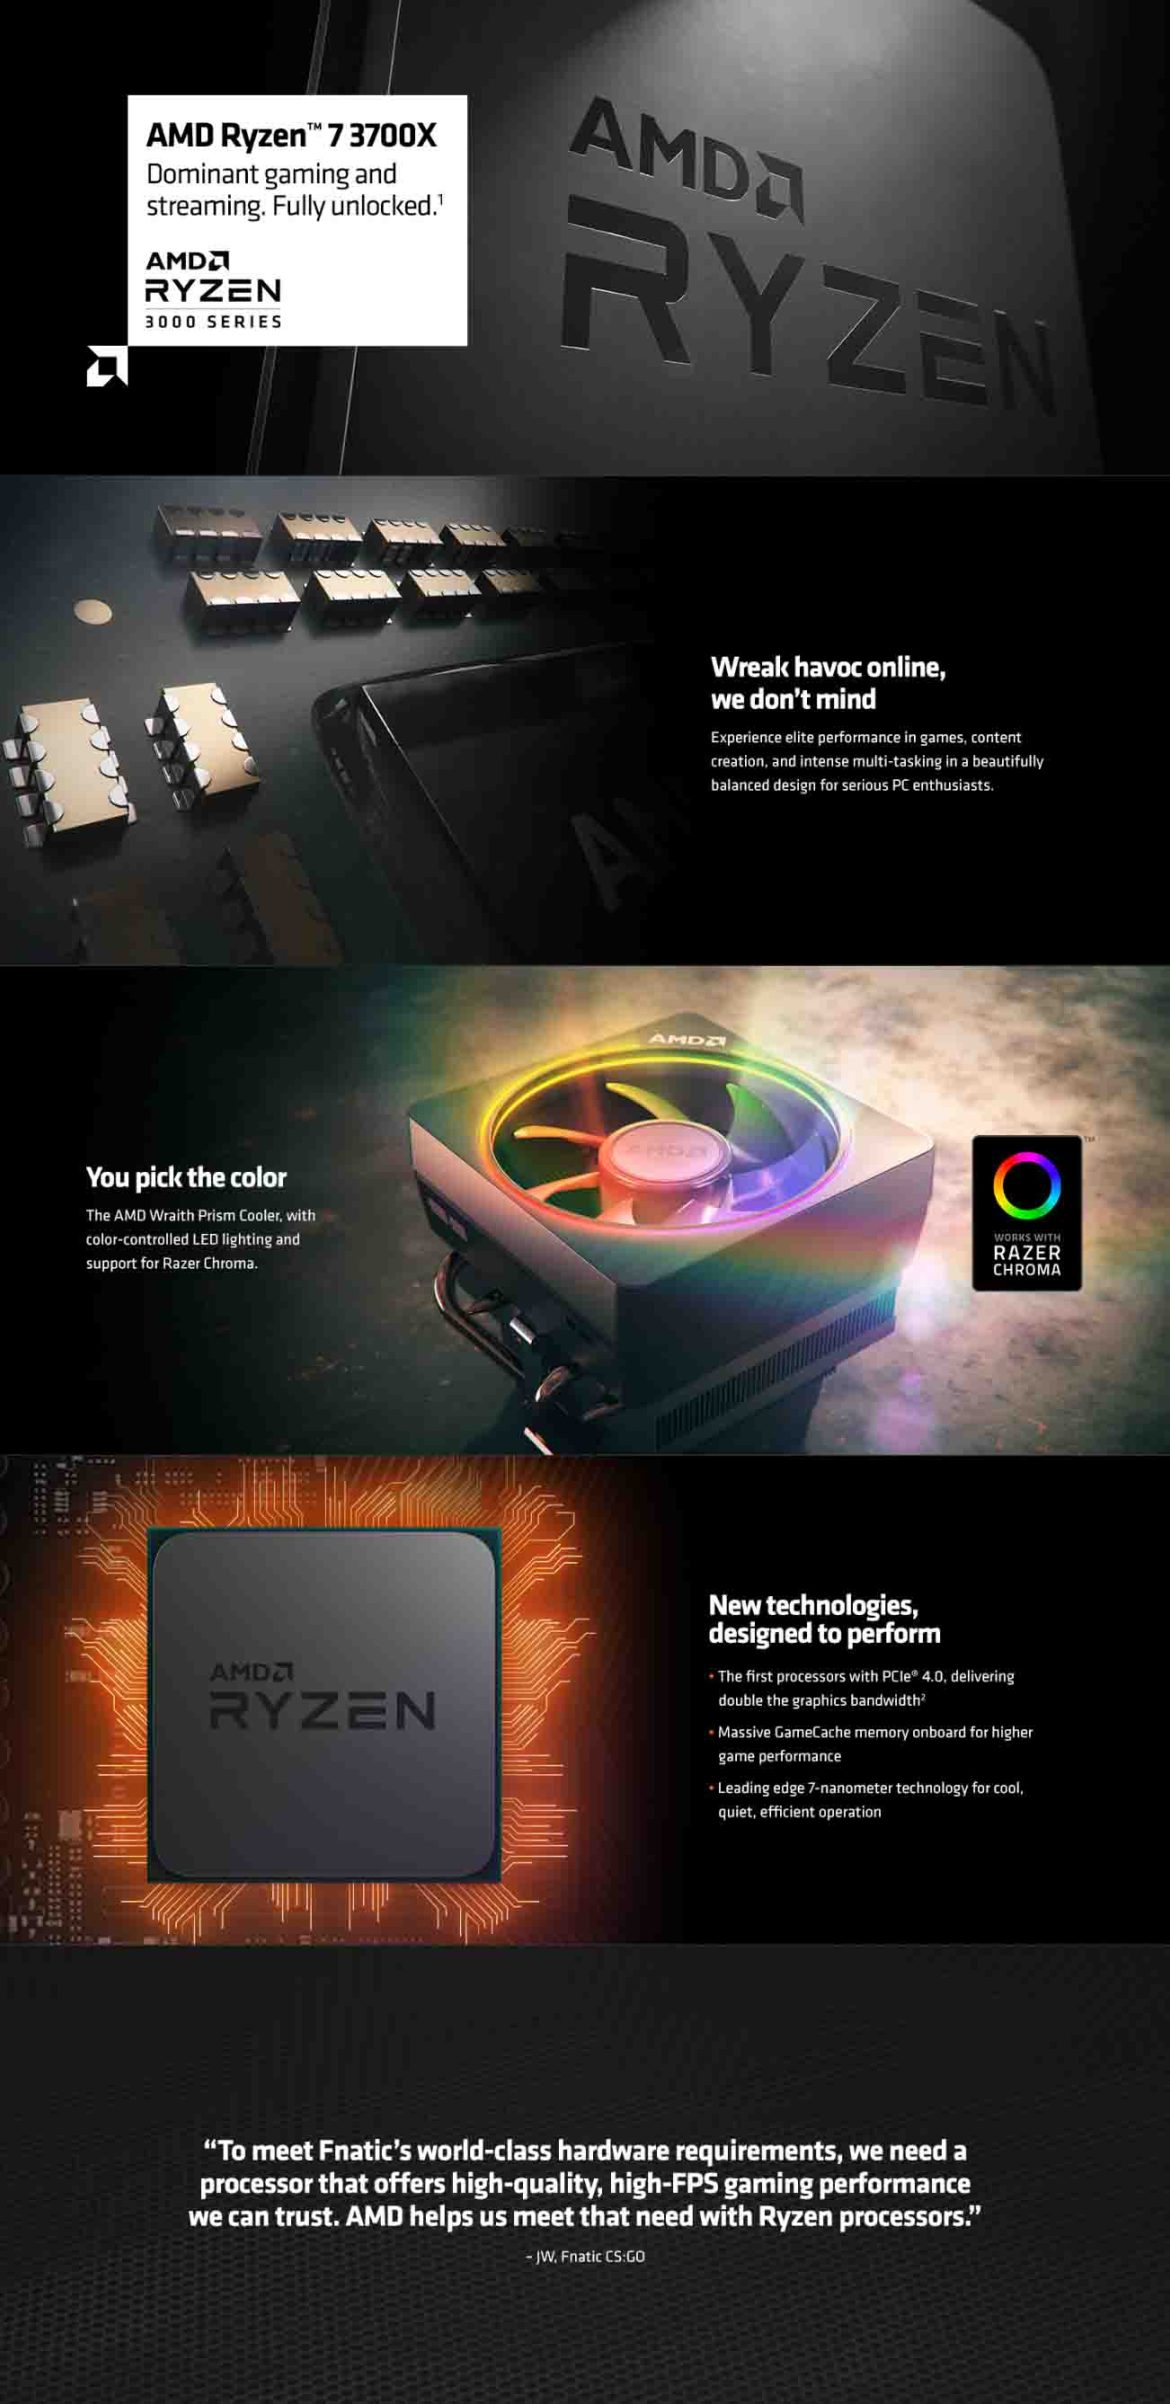 AMD-Ryzen-7-3700X-Desktop-Processor-Details-Eitimad